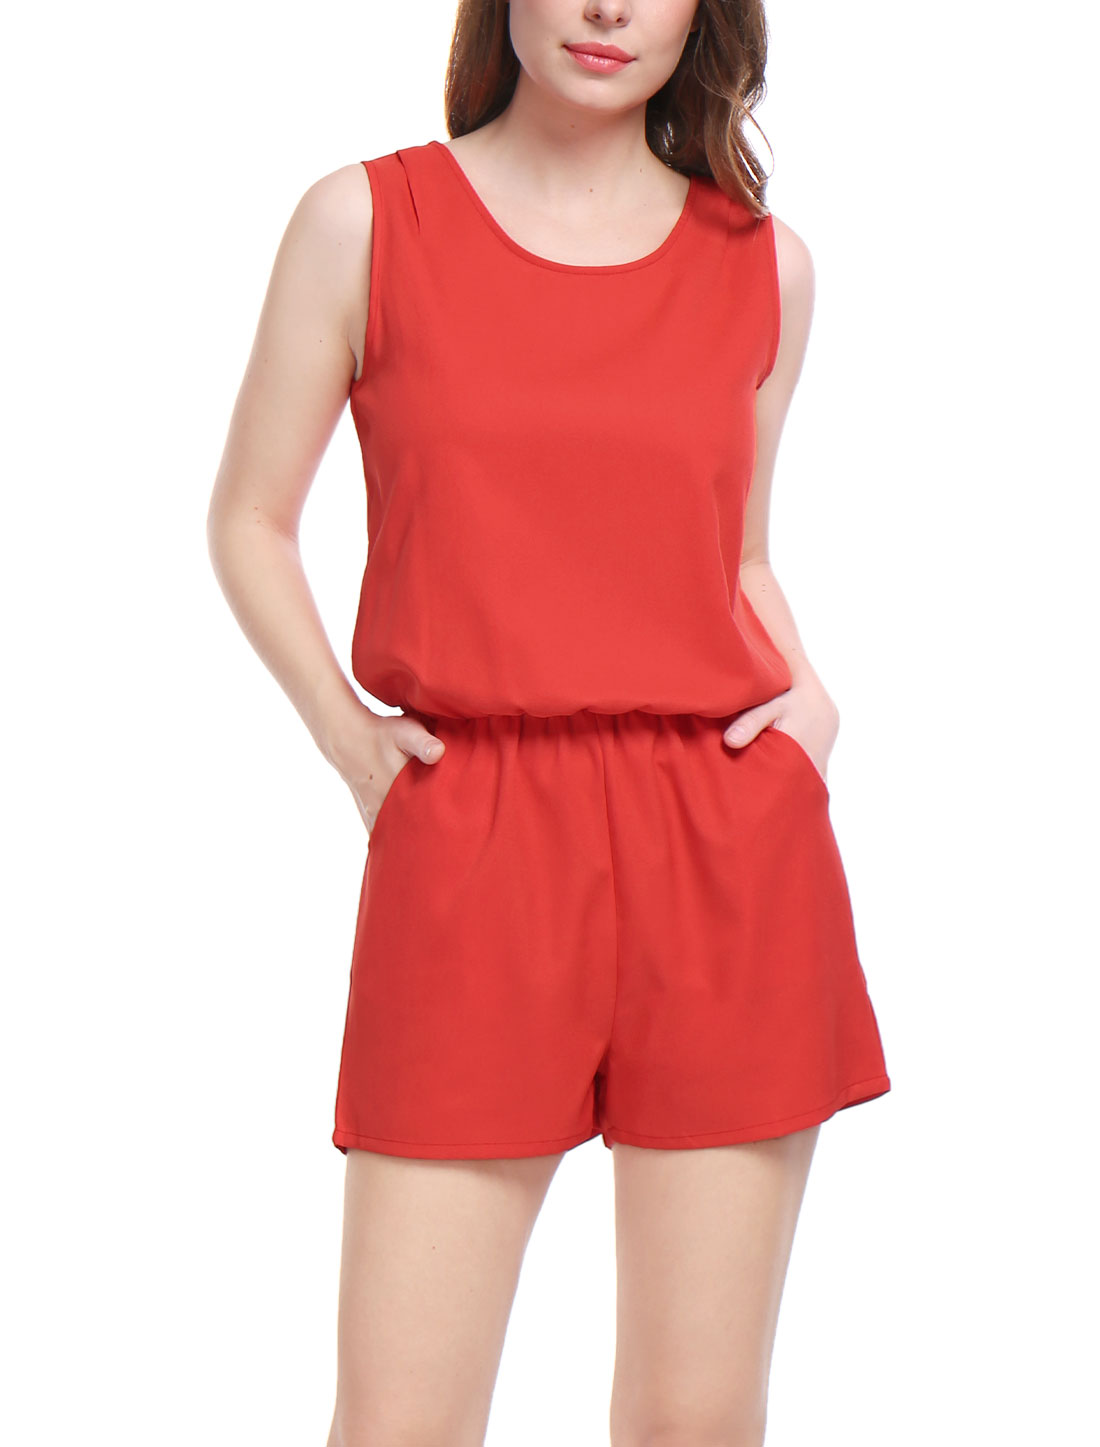 Women Round Neck Sleeveless Front Pockets Casual Rompers Red XS